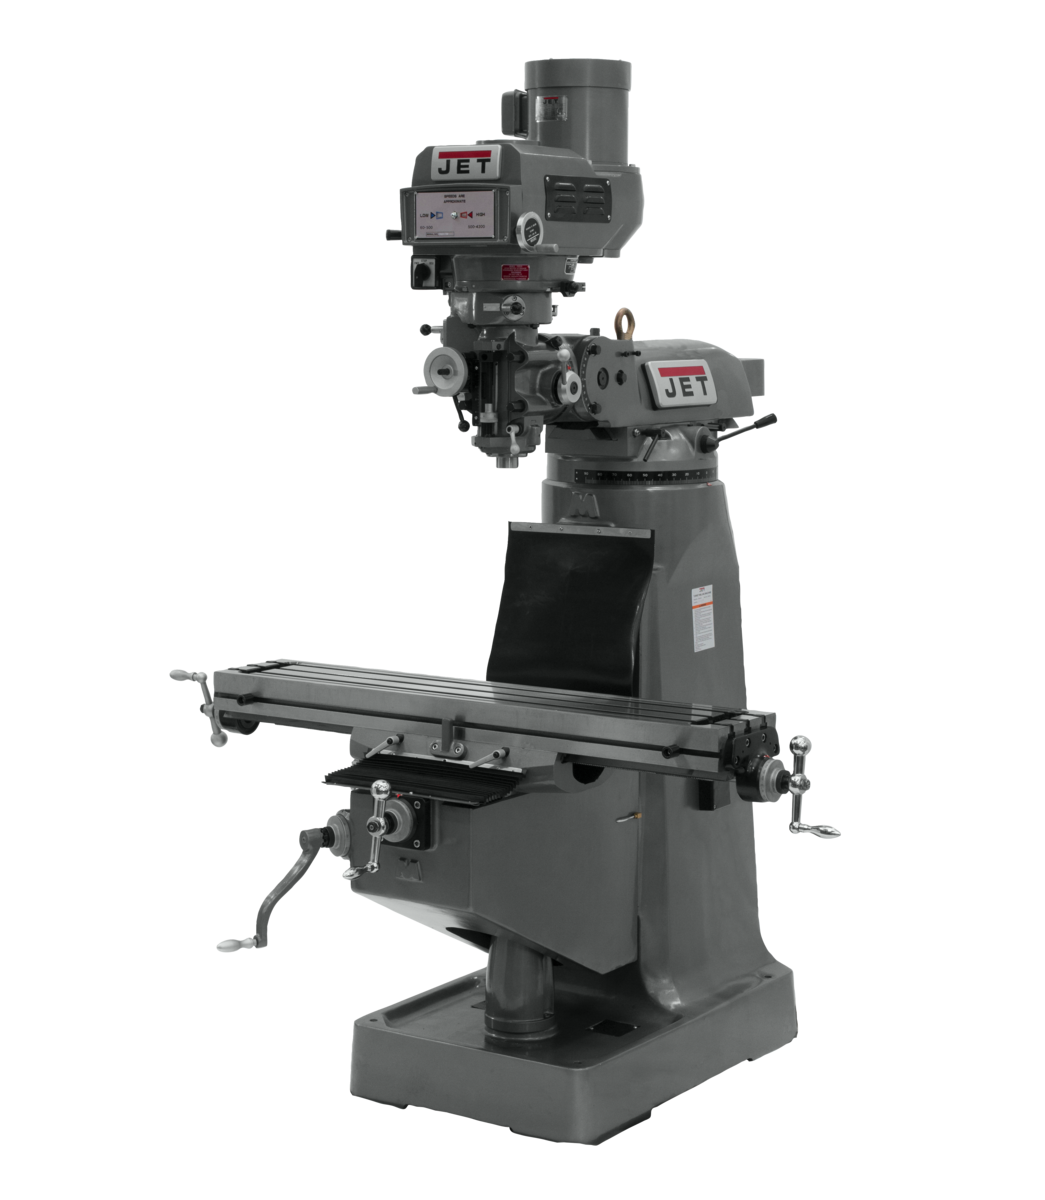 JTM-4VS Mill With 3-Axis ACU-RITE 203 DRO (Quill)